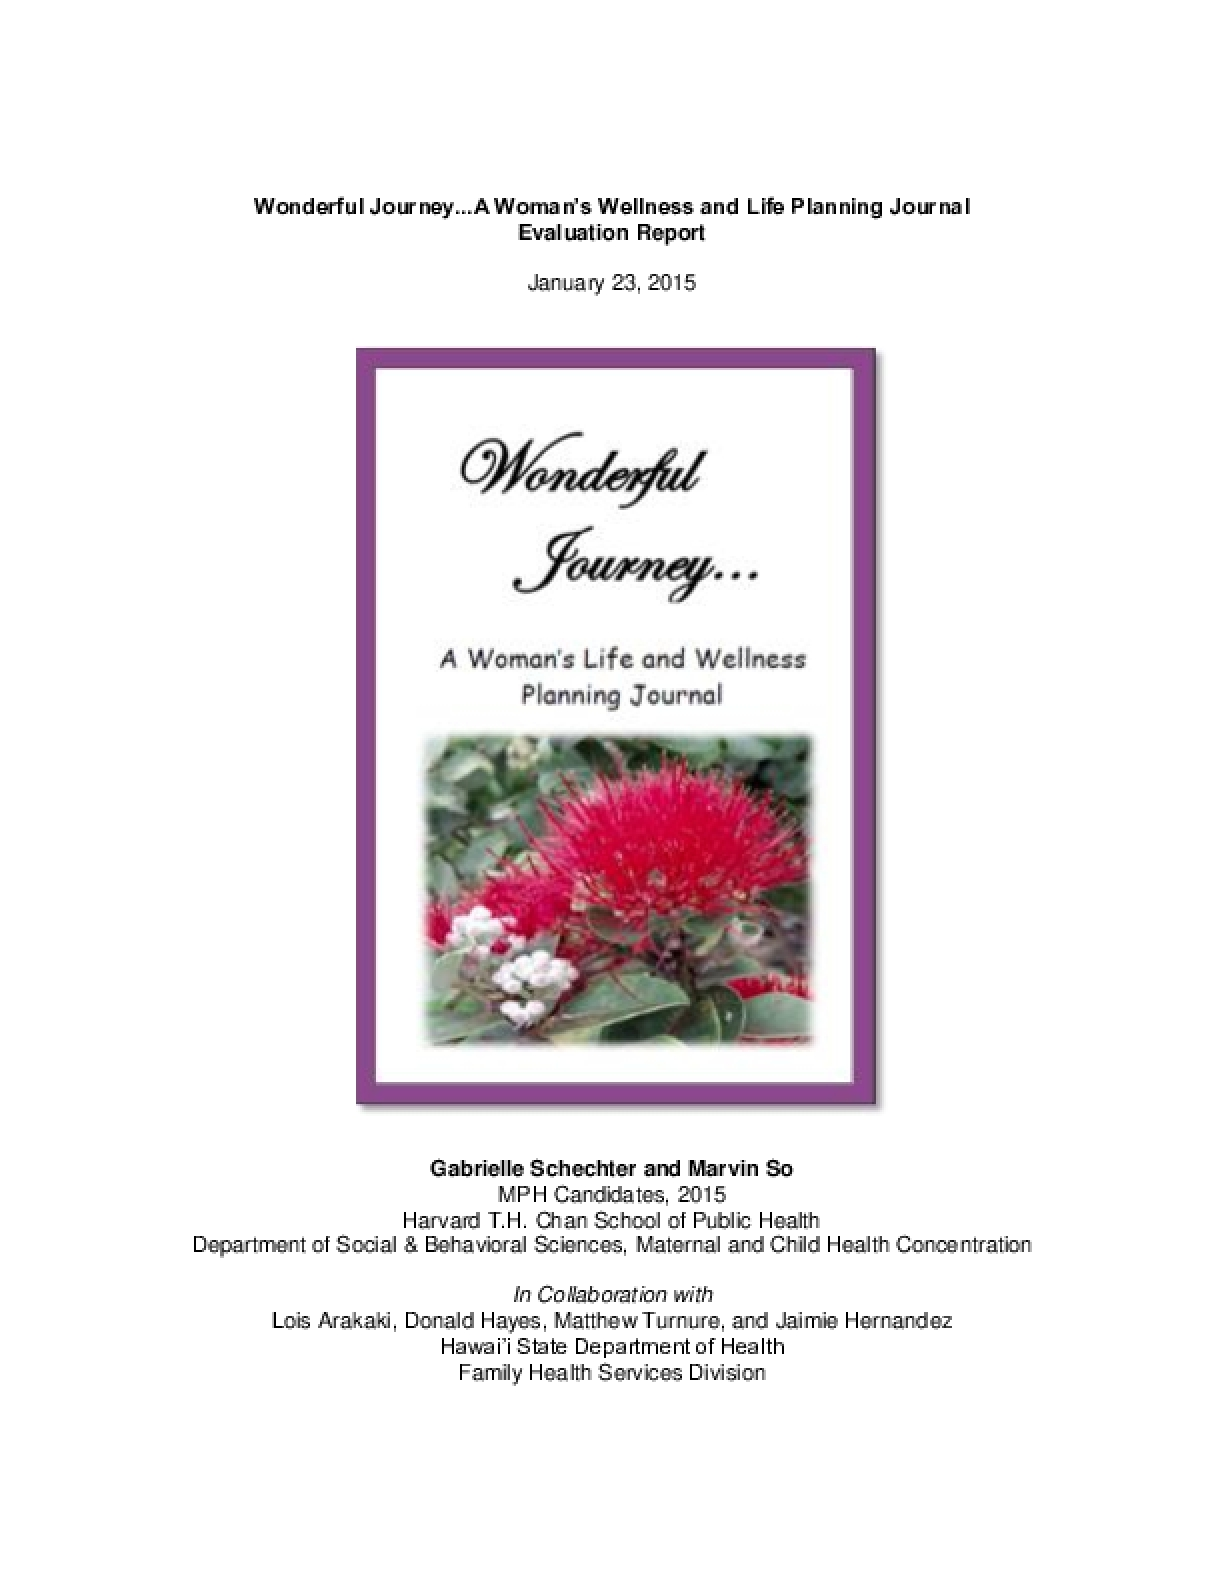 Wonderful Journey...A Woman's Wellness and Life Planning Journal  Evaluation Report